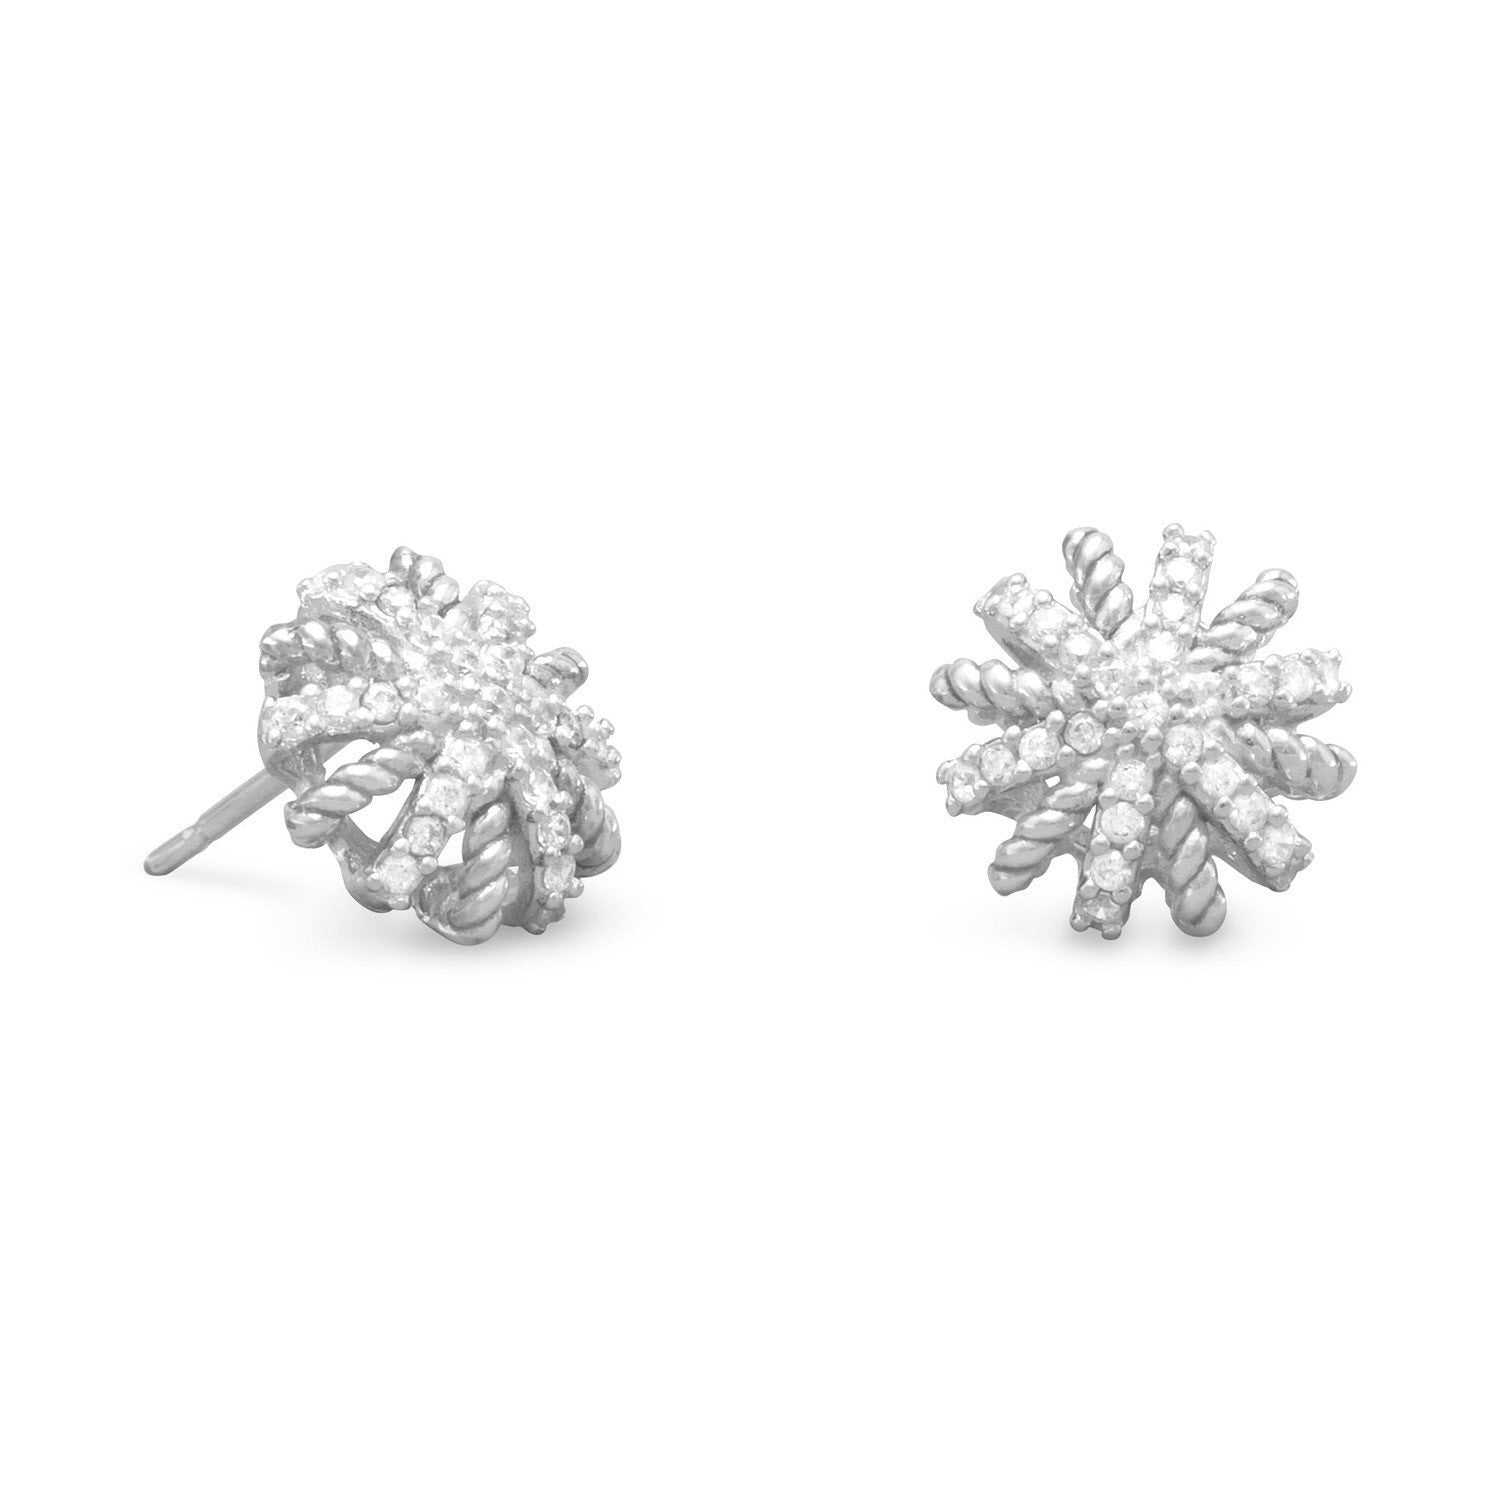 Domed Cubic Zirconia Starburst Earrings